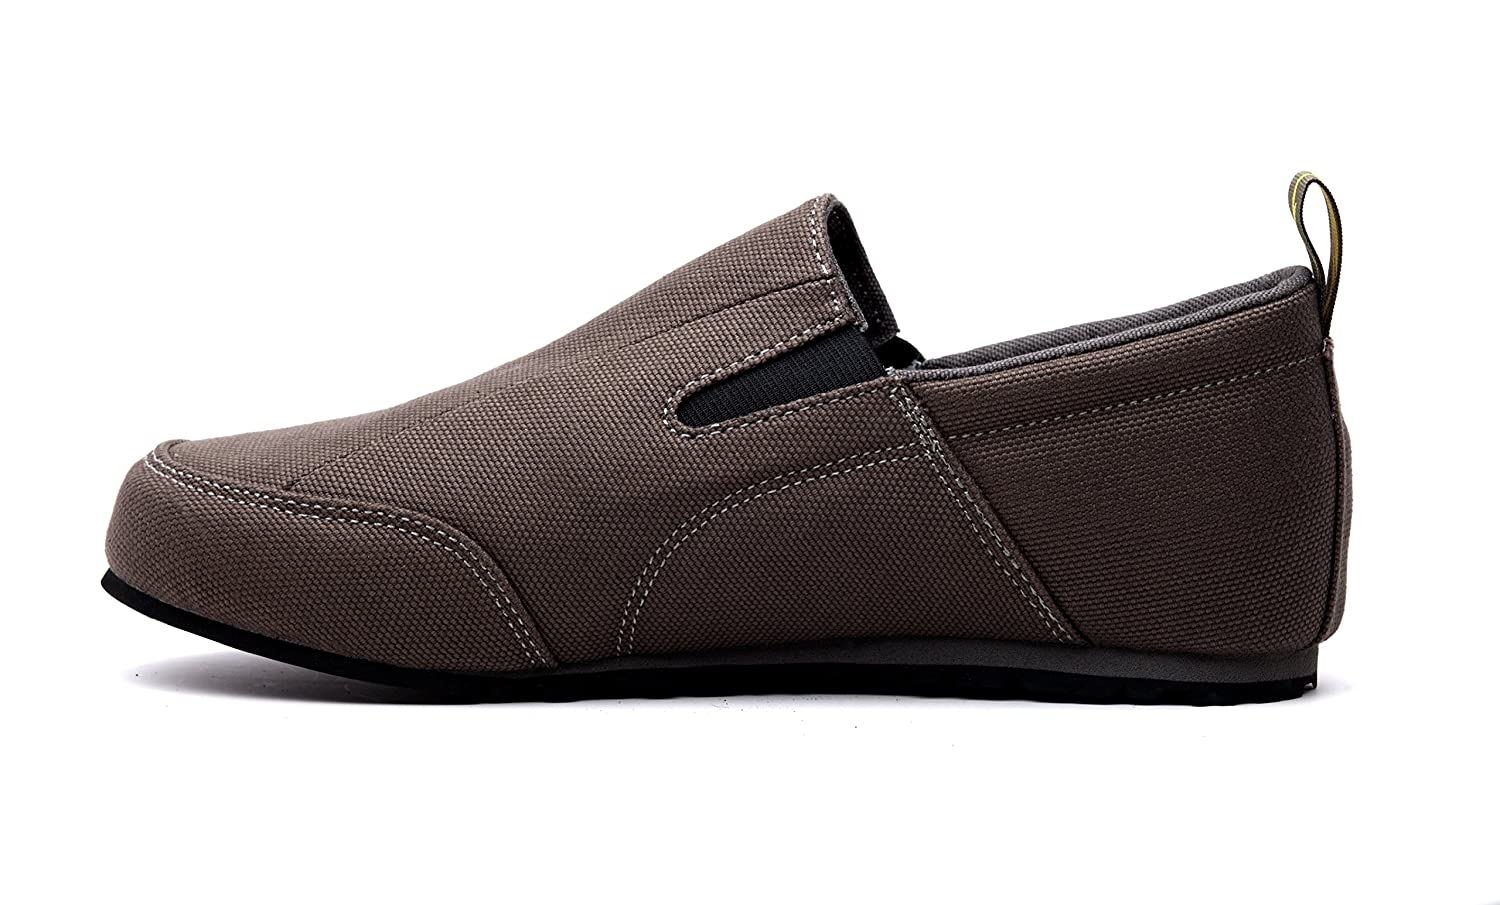 Evolv Cruzer Slip-on Approach Shoe B01M0H0E6O 6 D(M) US|CANTEEN